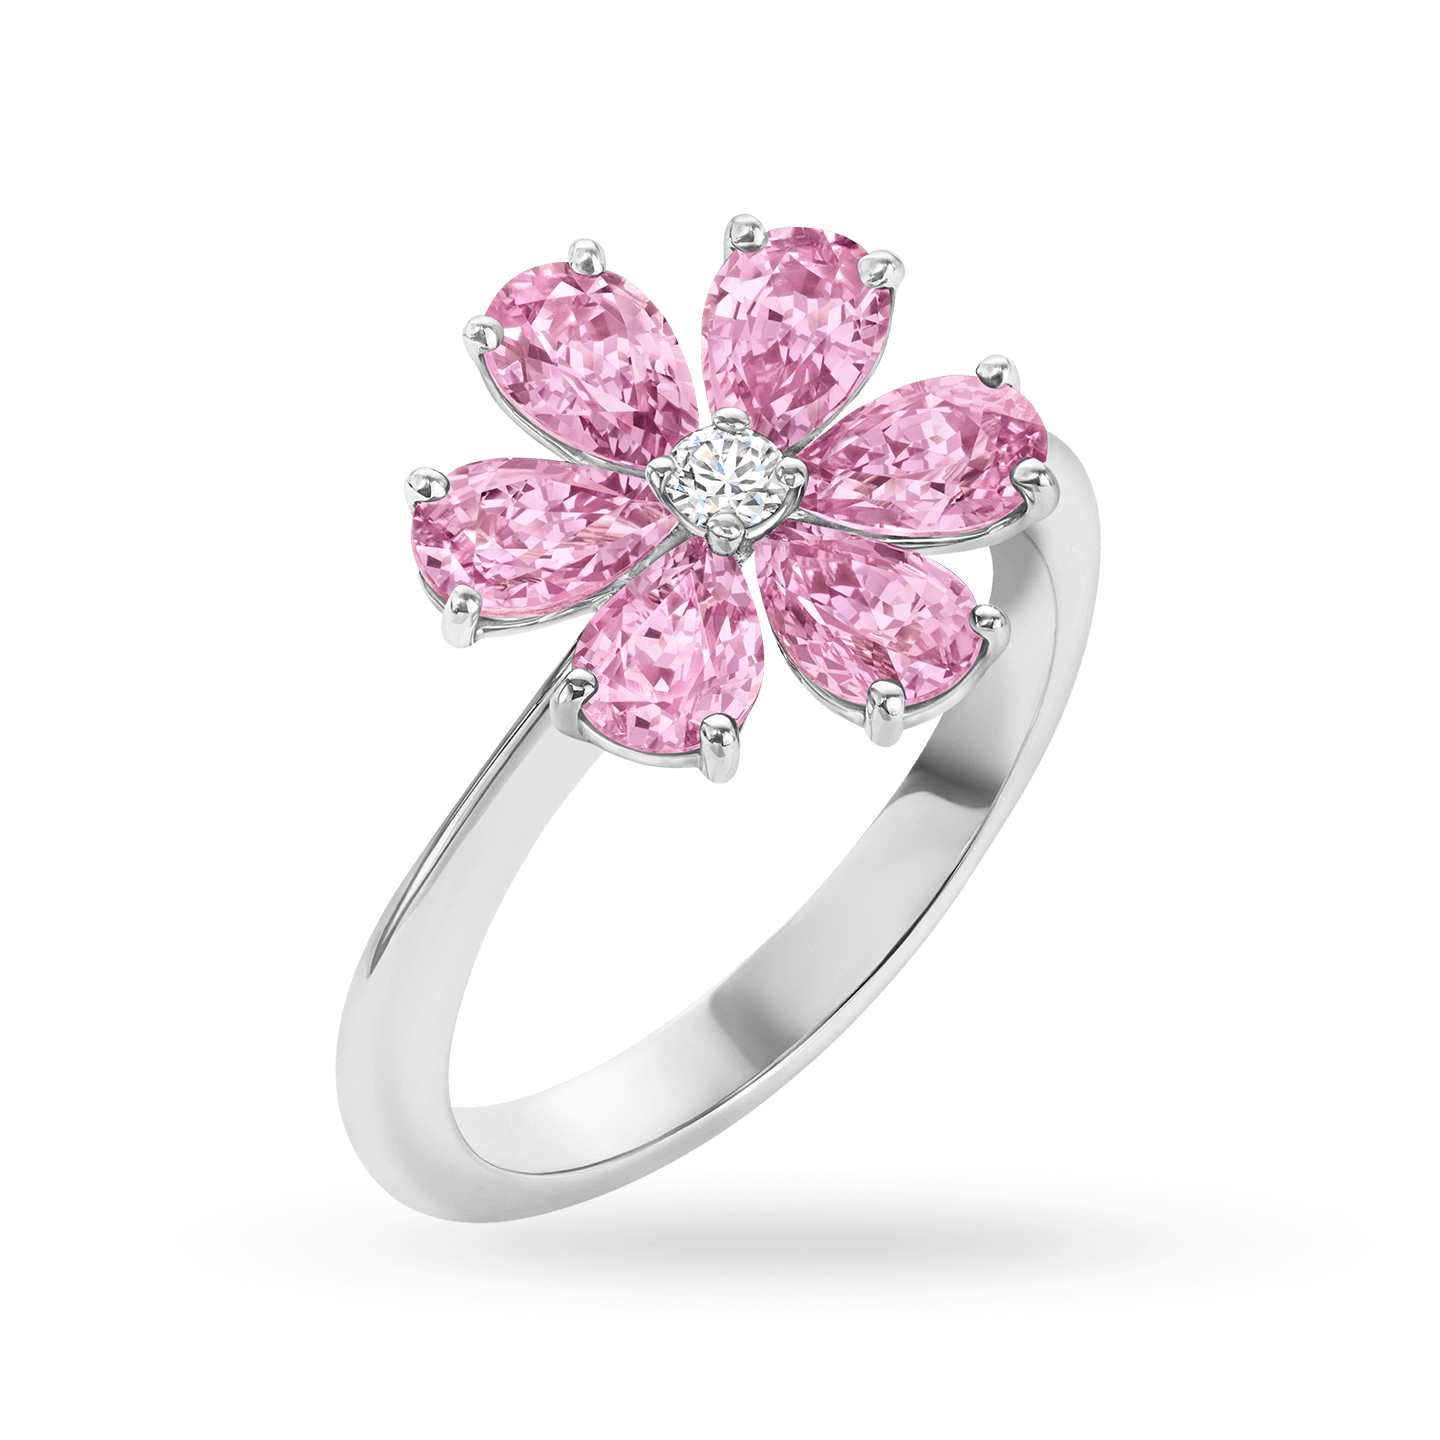 Forget-Me-Not Pink Sapphire and Diamond Ring, Product Image 2